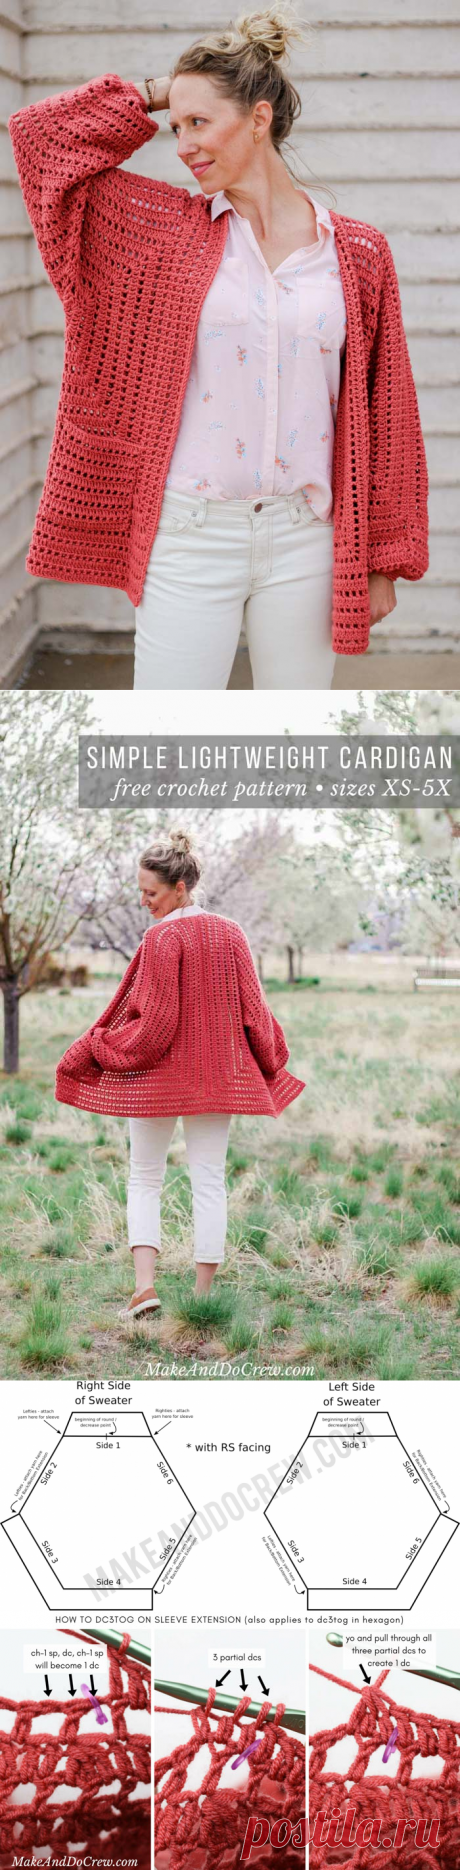 Shockingly Easy Crochet Cardigan Pattern Made From 2 Hexagons - Free Pattern and Tutorial